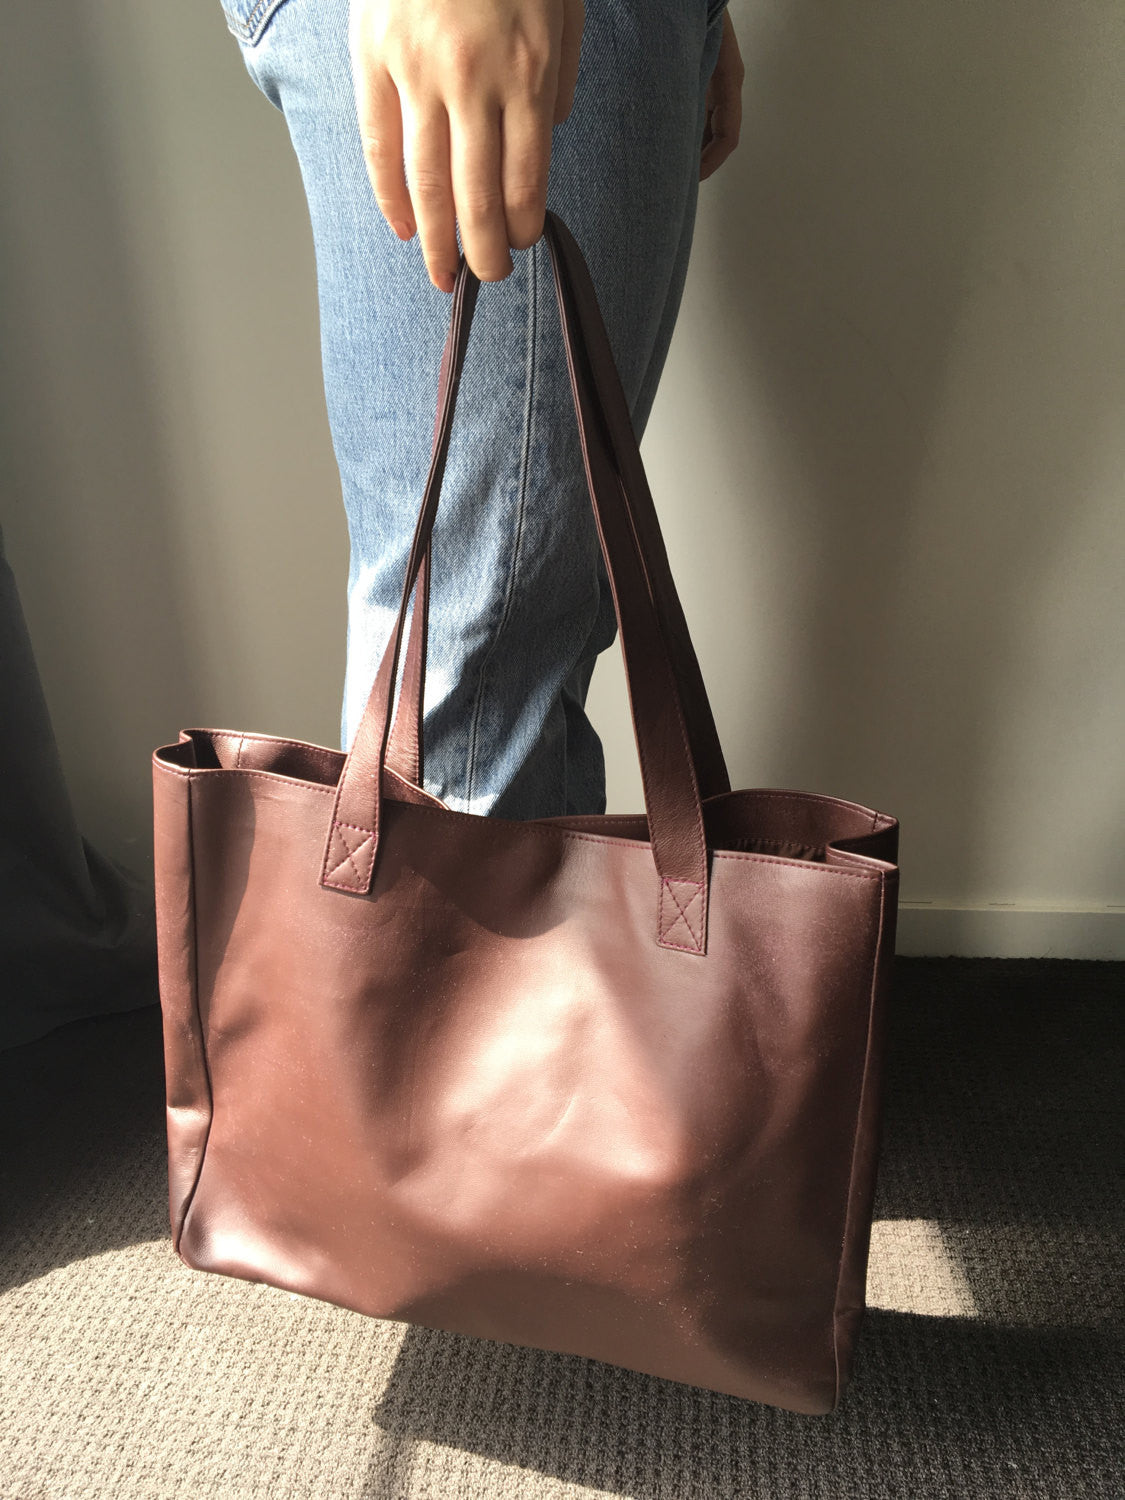 The Total - Cognac Leather Shoulder Tote Bag,Handmade genuine leather, Traditional and timeless bag, Leather tote bag,leather shoulder bag, tote